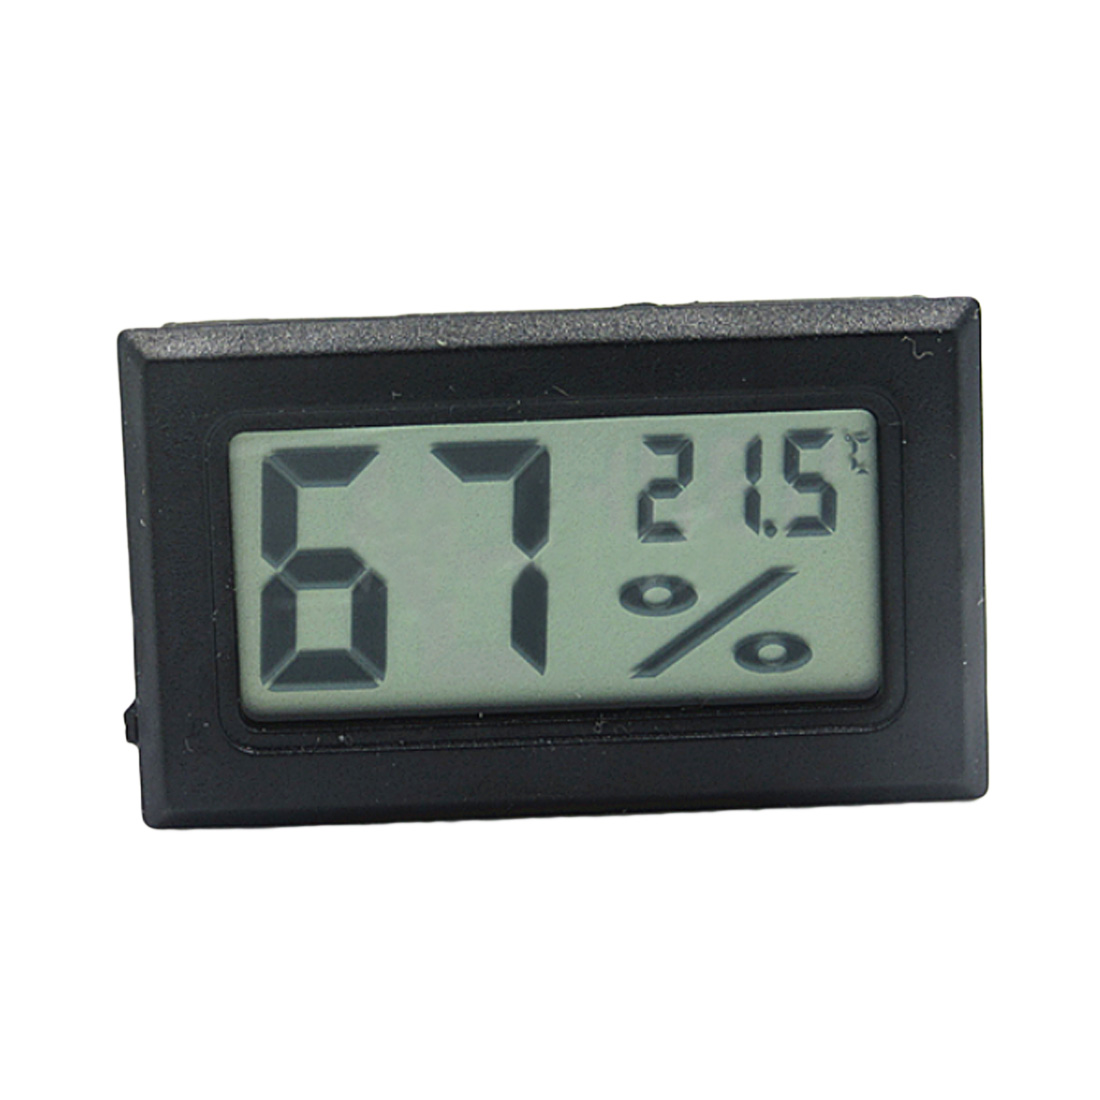 1 PCS Mini LCD Digital Thermometer Hygrometer Temperature Indoor Convenient Temperature Sensor Humidity Meter Gauge Instruments home mini lcd digital display refrigerator electronic temperature meter gauge thermometer temp sensor with probe without battery